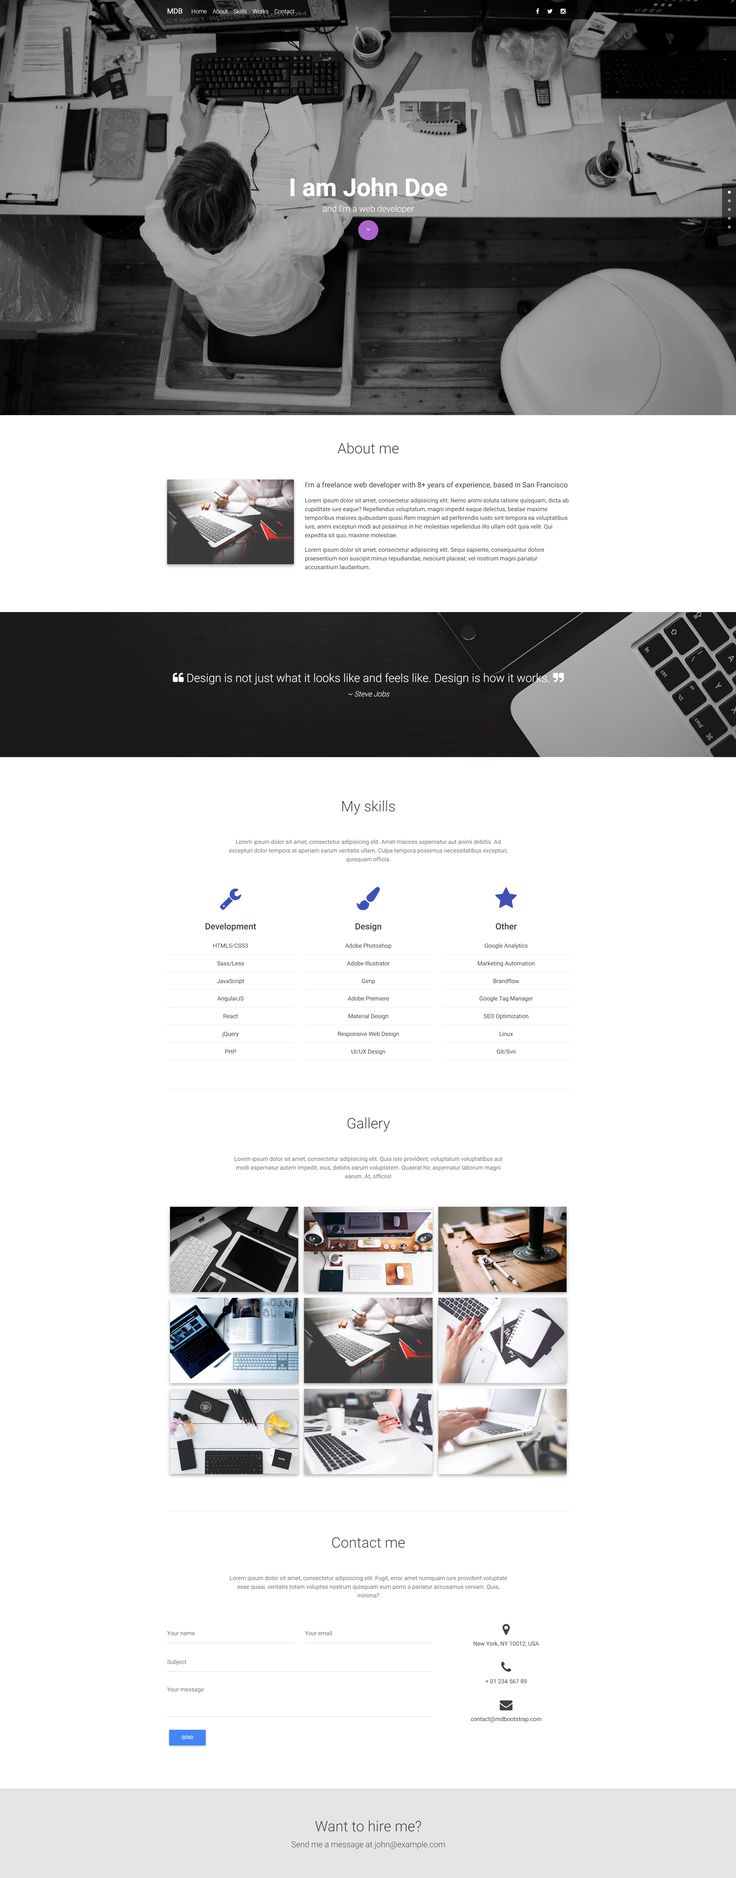 Web Developer Portfolio template created with Material Design for Bootstrap